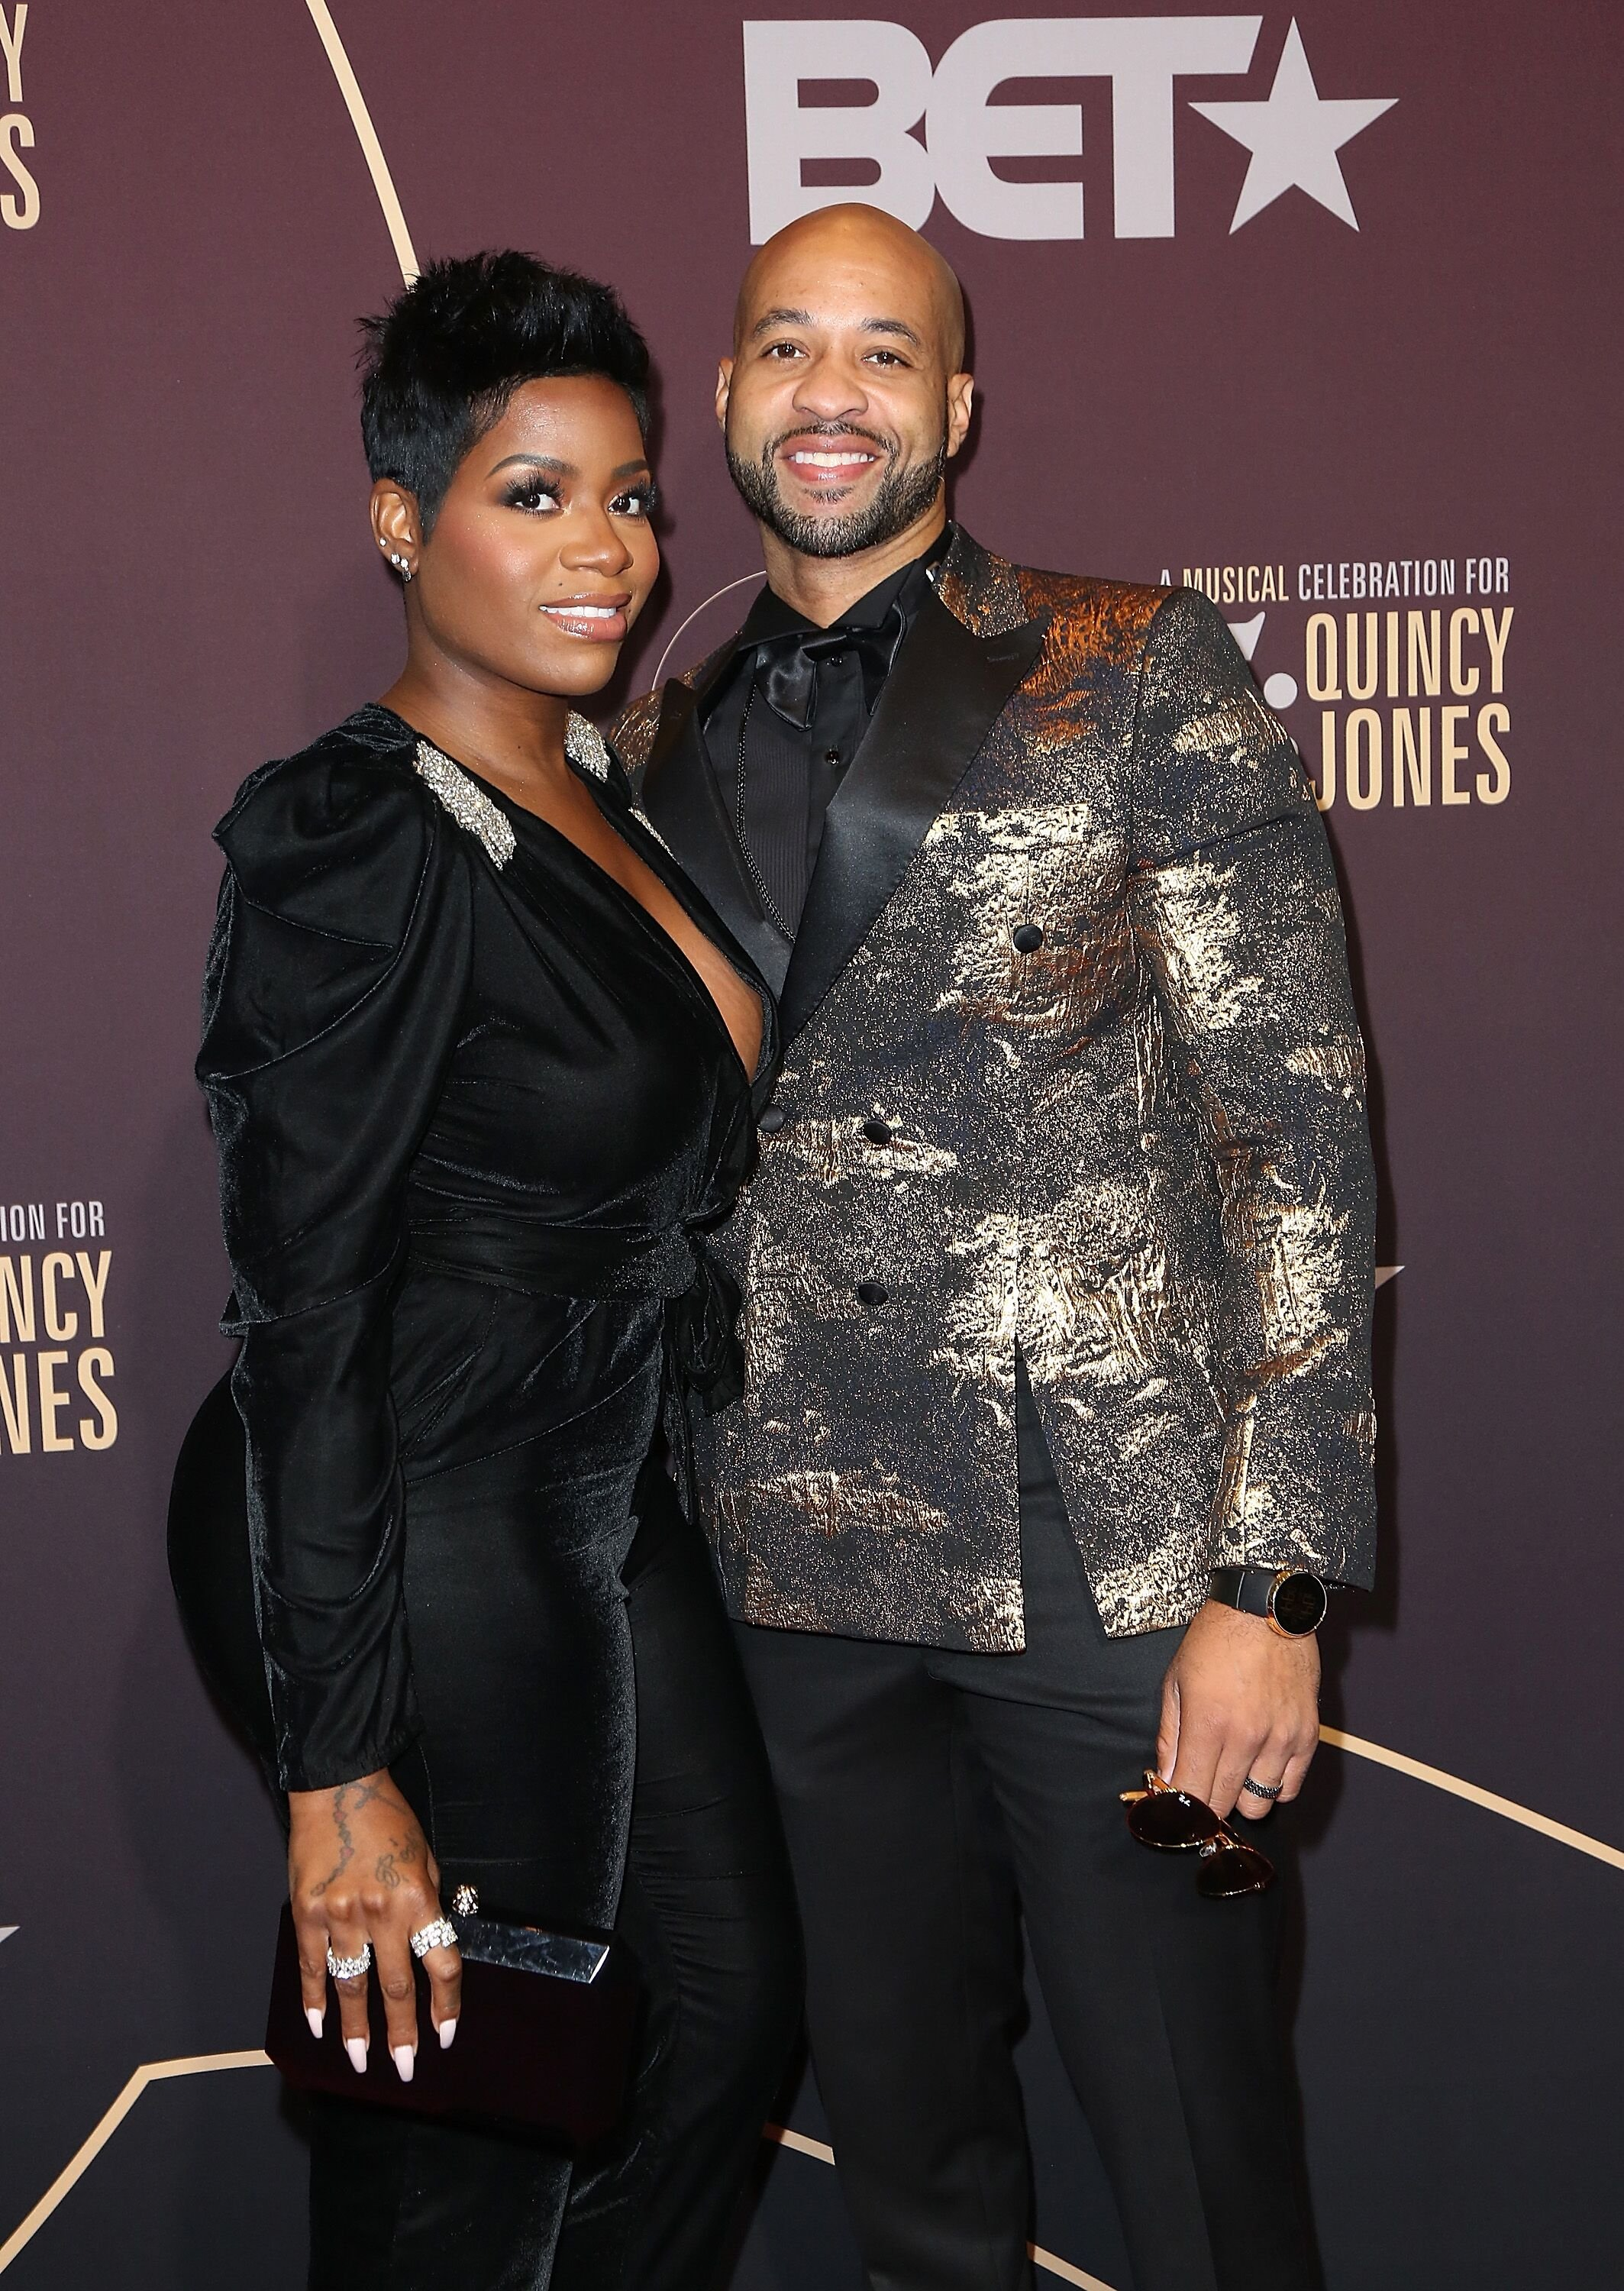 """Fantasia Barrino and Kendall Taylor arrive at """"Q 85: A Musical Celebration for Quincy Jones"""" on September 25, 2018 in Los Angeles, California 